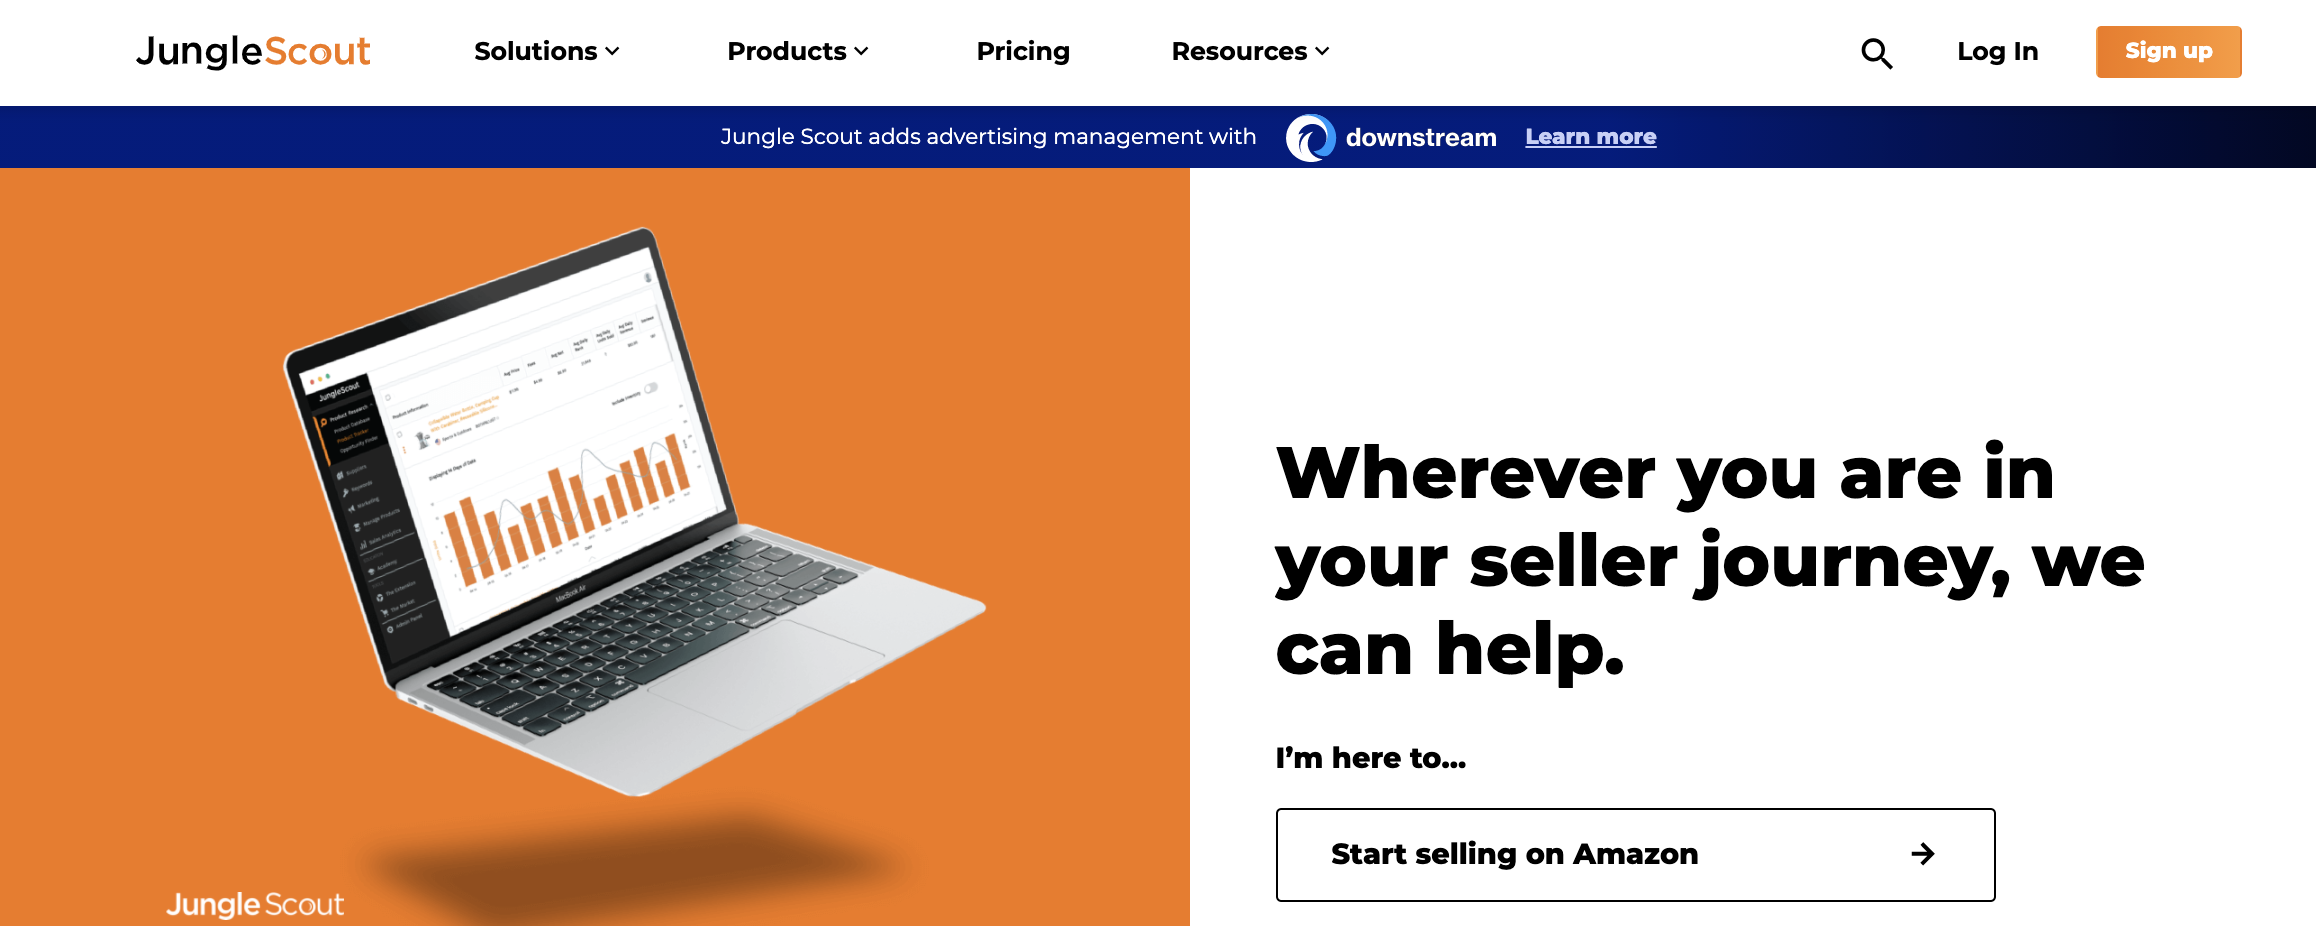 JungleScout, one of the best Amazon PPC tools